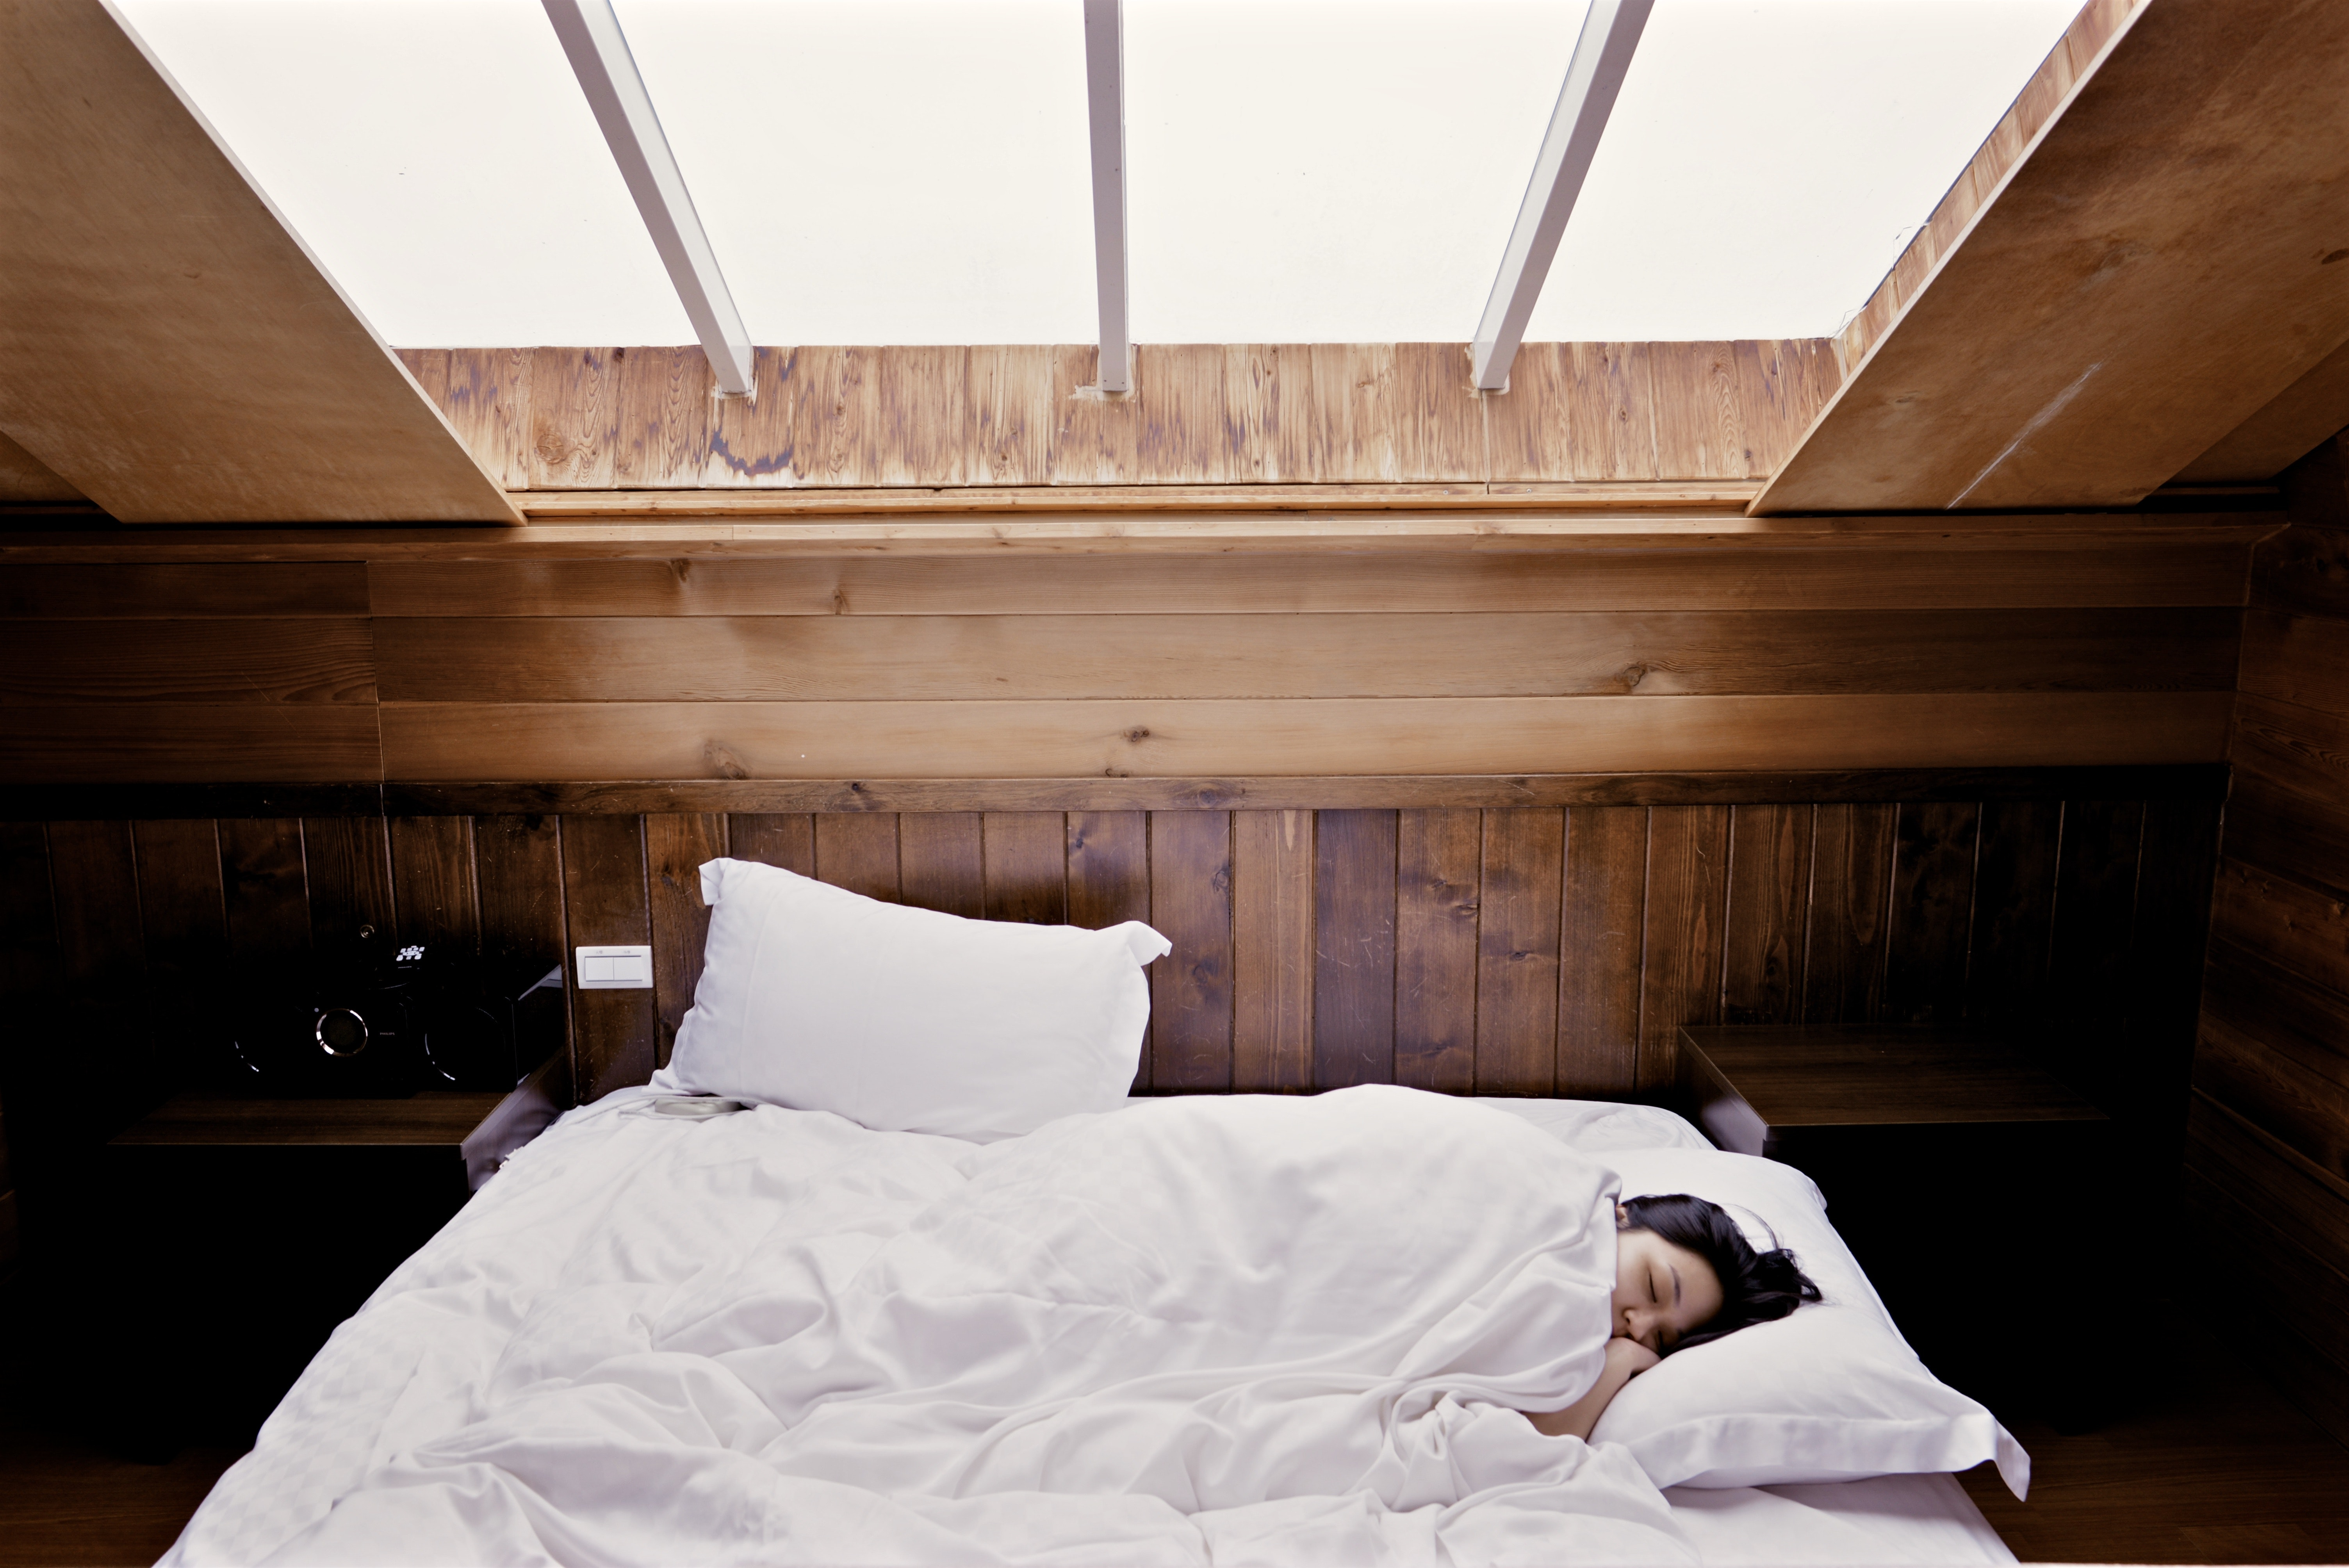 Woman lying in bed during daylight